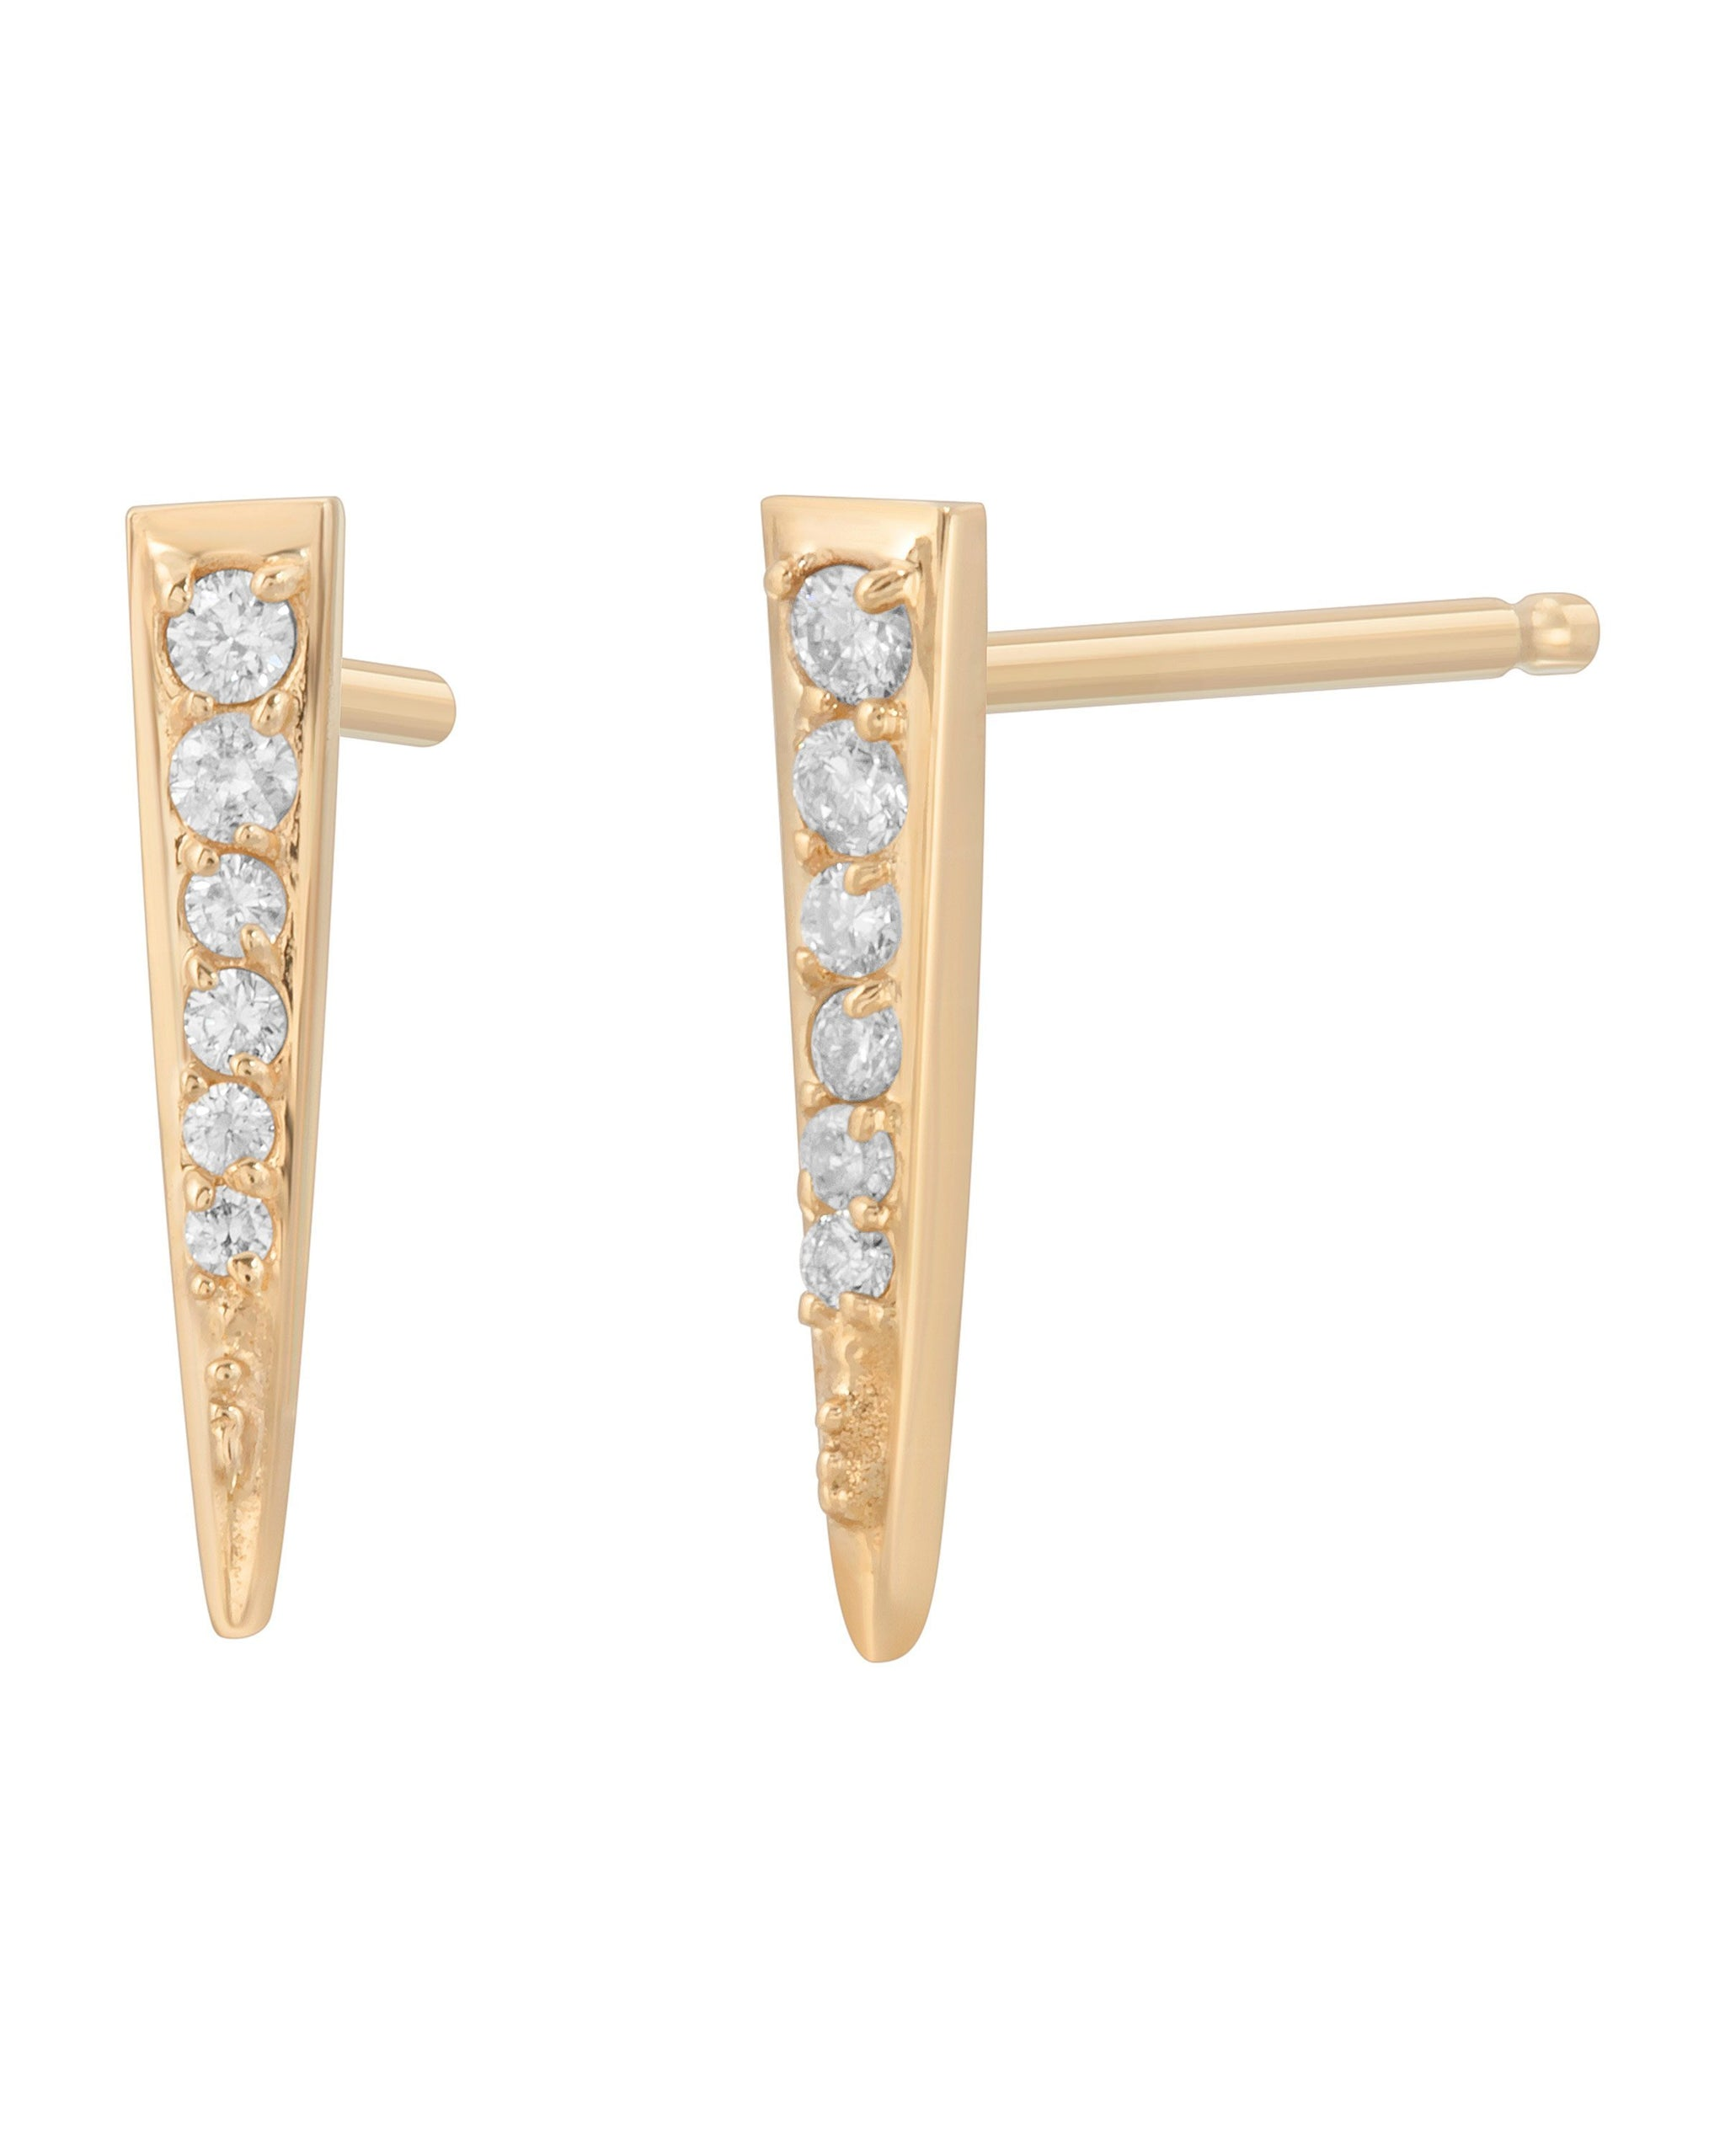 Astra Studs, 14k Yellow Gold & Diamond Spike Stud Earrings, Handmade by Turquoise + Tobacco